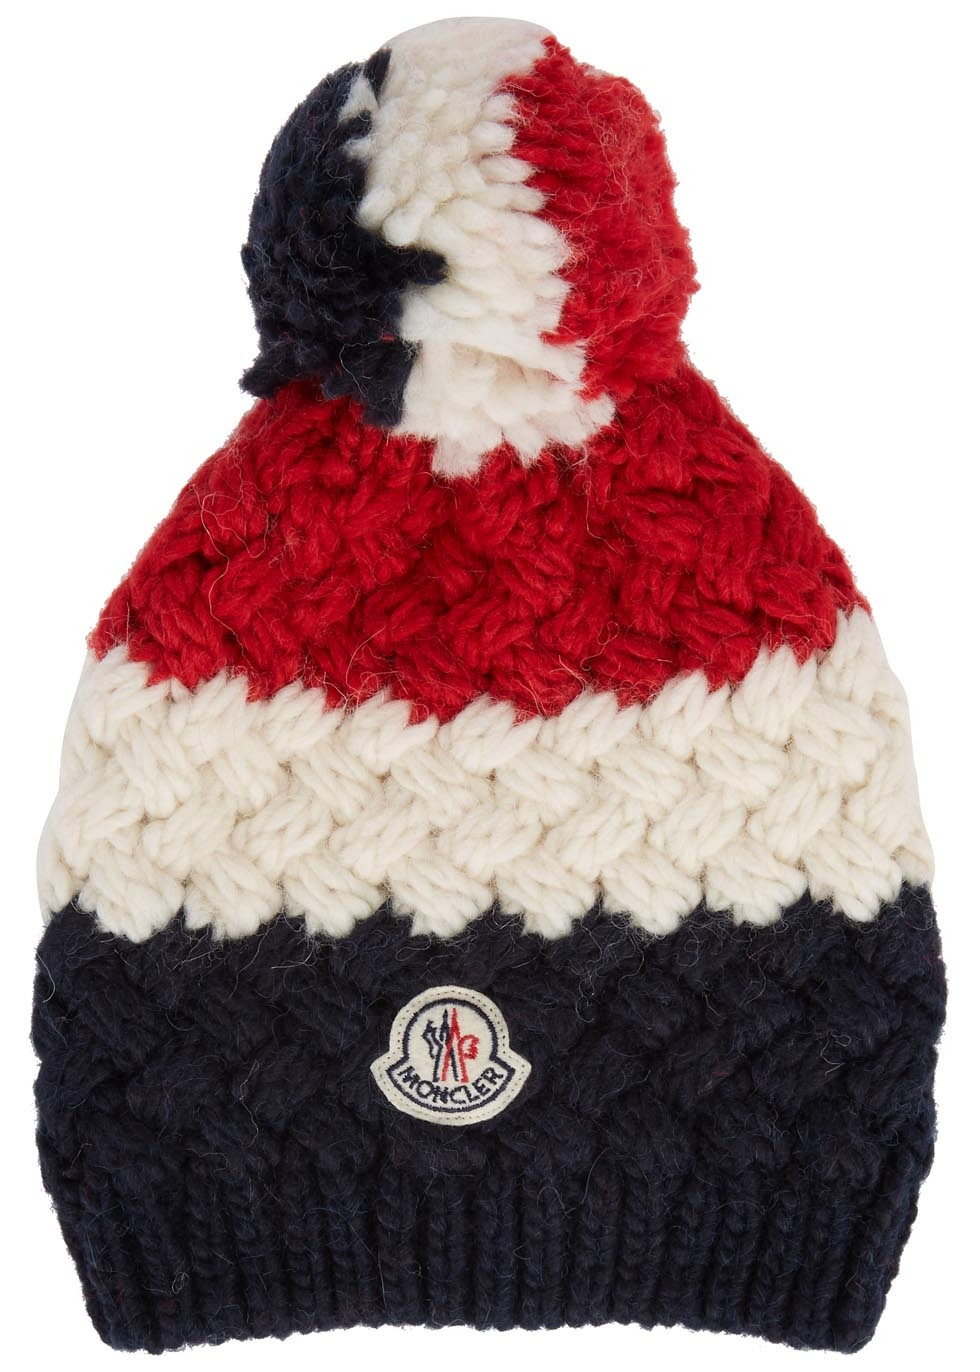 Awesome Moncler Chunky Knit Hat Chunky Knit Hat Of Delightful 46 Pictures Chunky Knit Hat